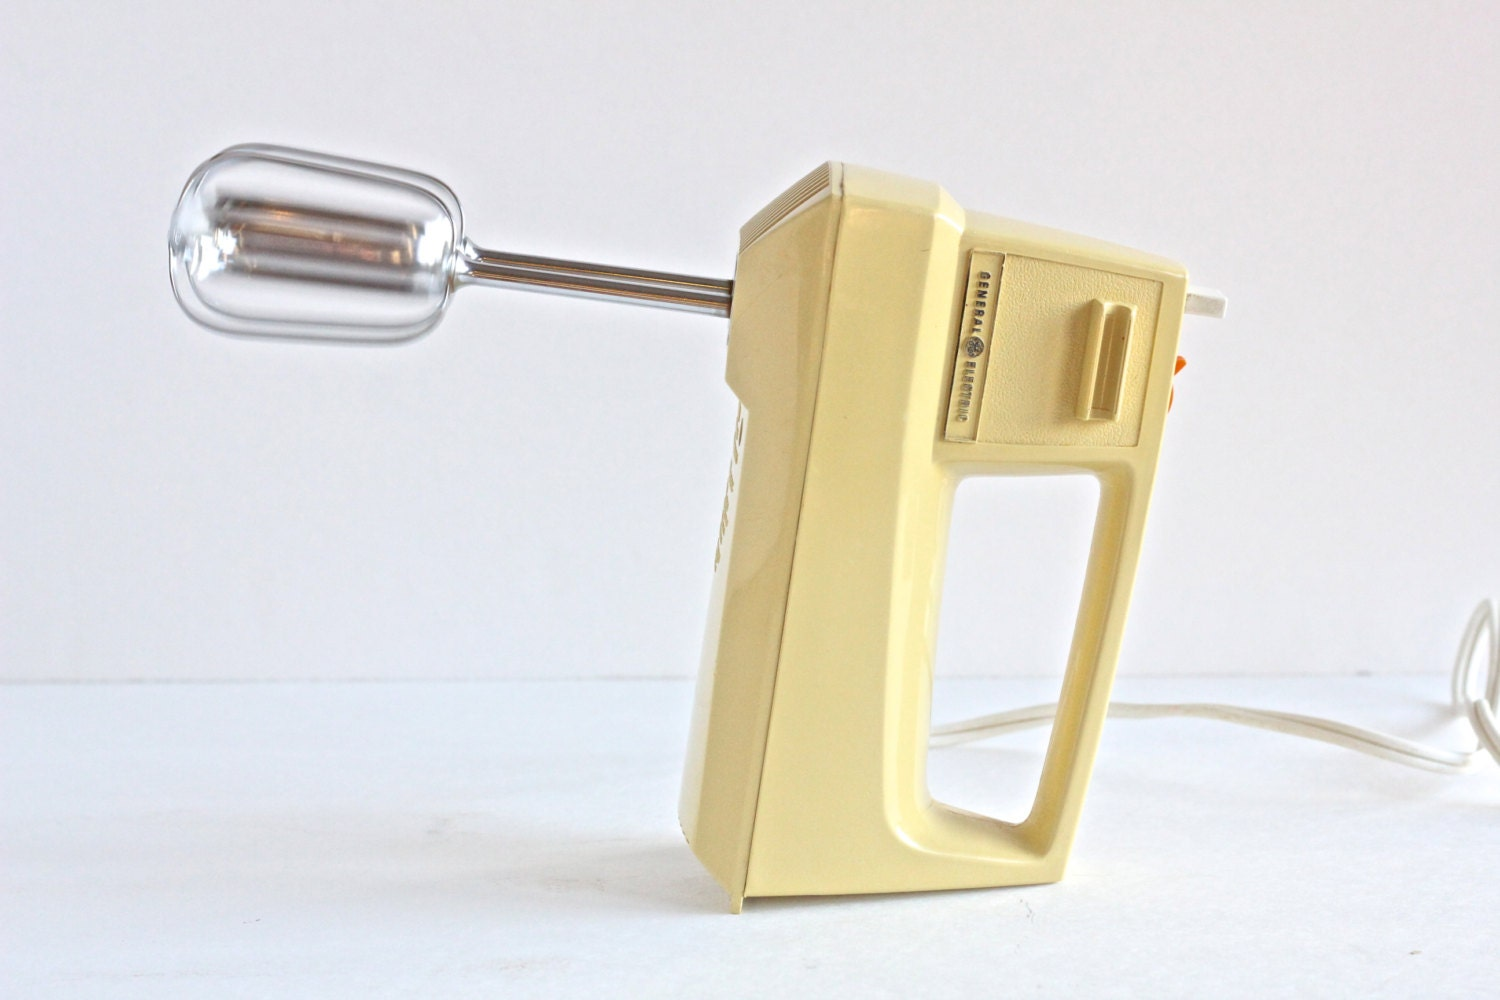 Vintage general electric hand mixer by thewrinklyelephant for Antique general electric mixer